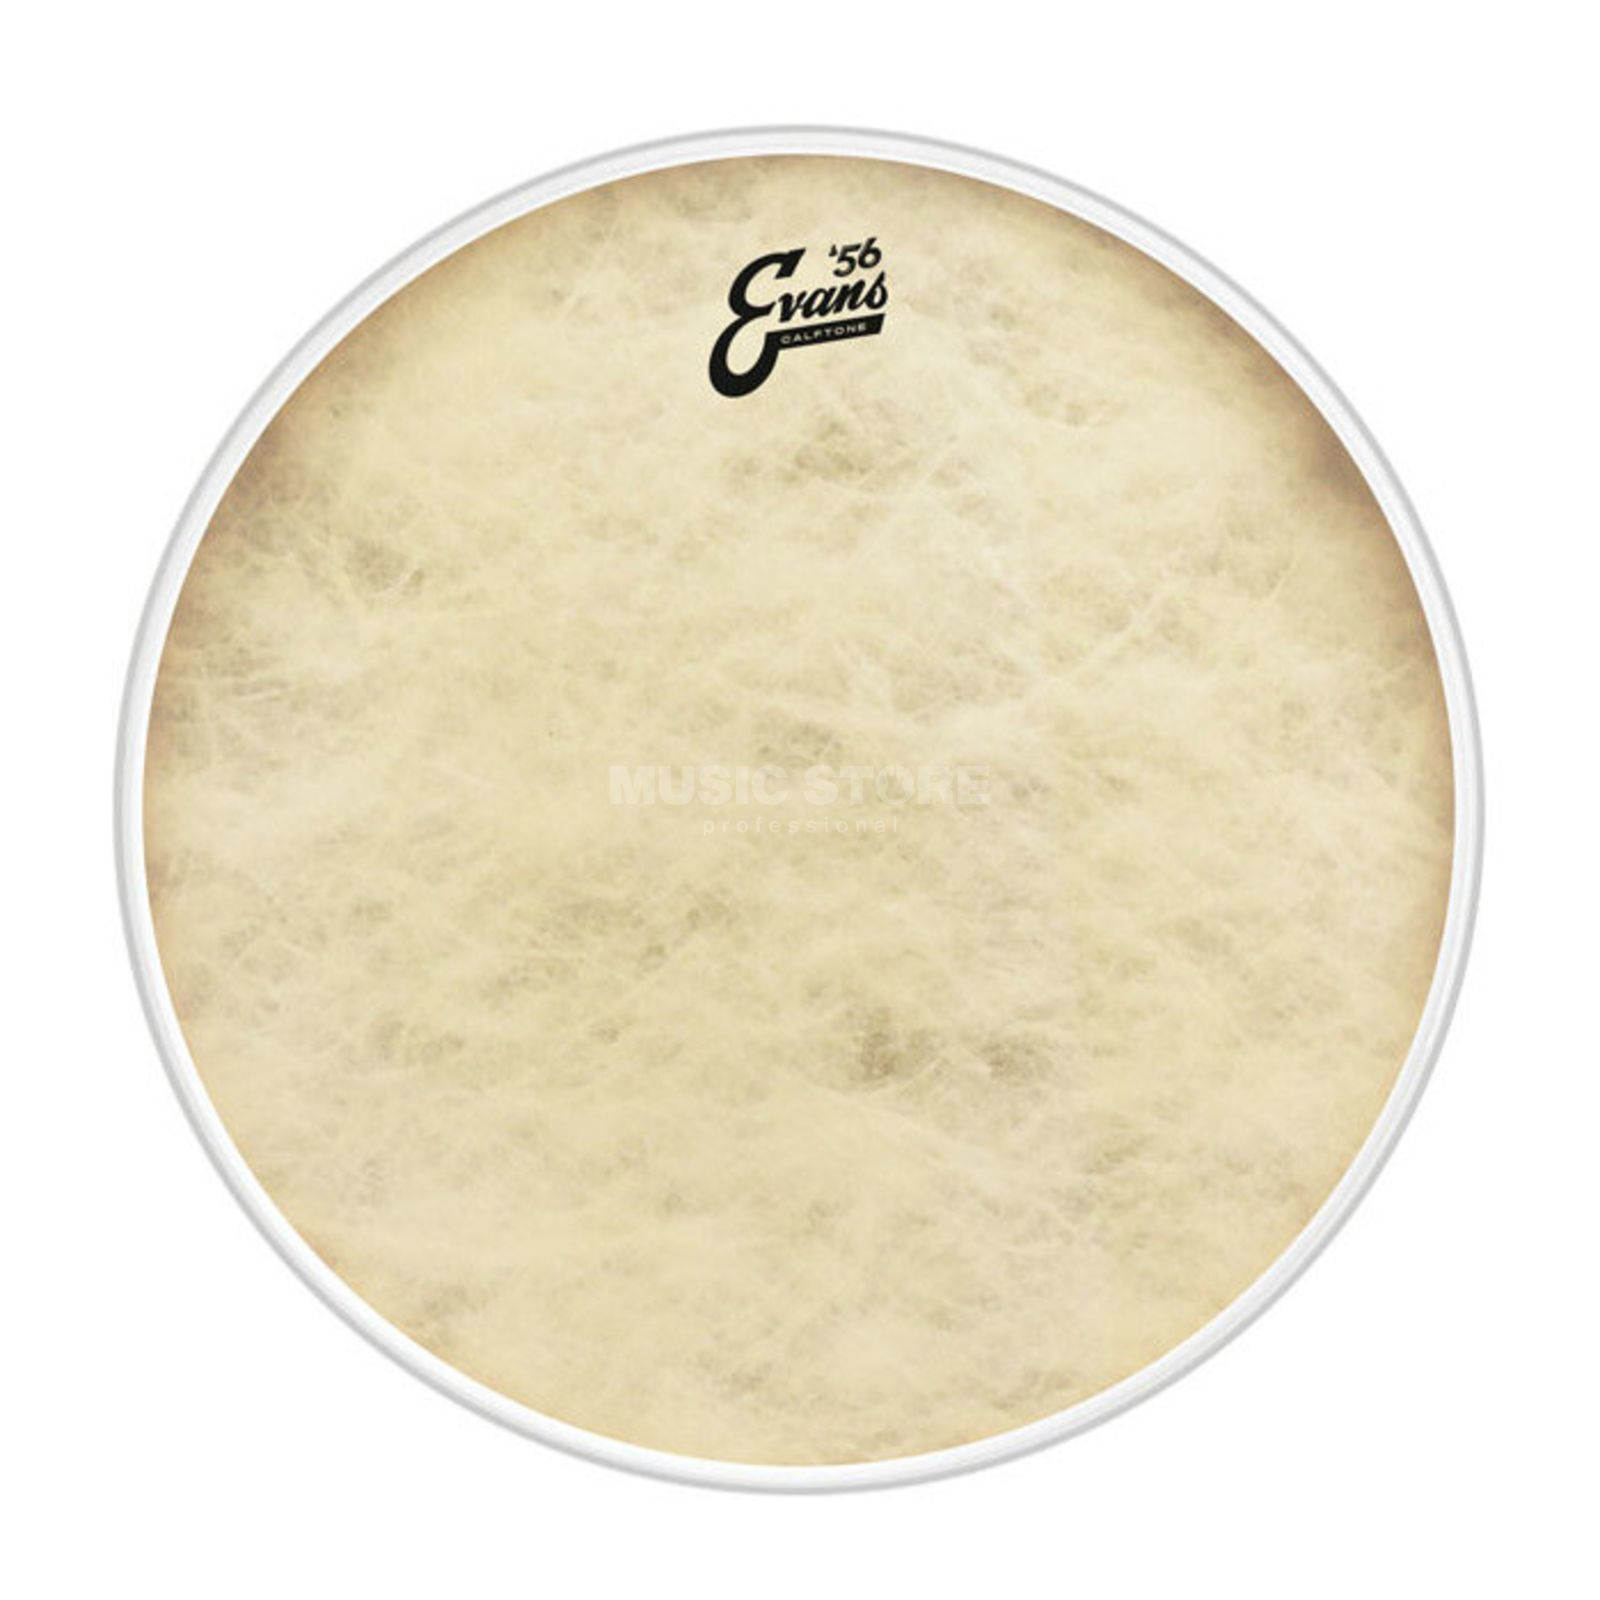 "Evans Calftone TT16CT, 16"", Bass Drum Batter (Tom Hoop) Product Image"